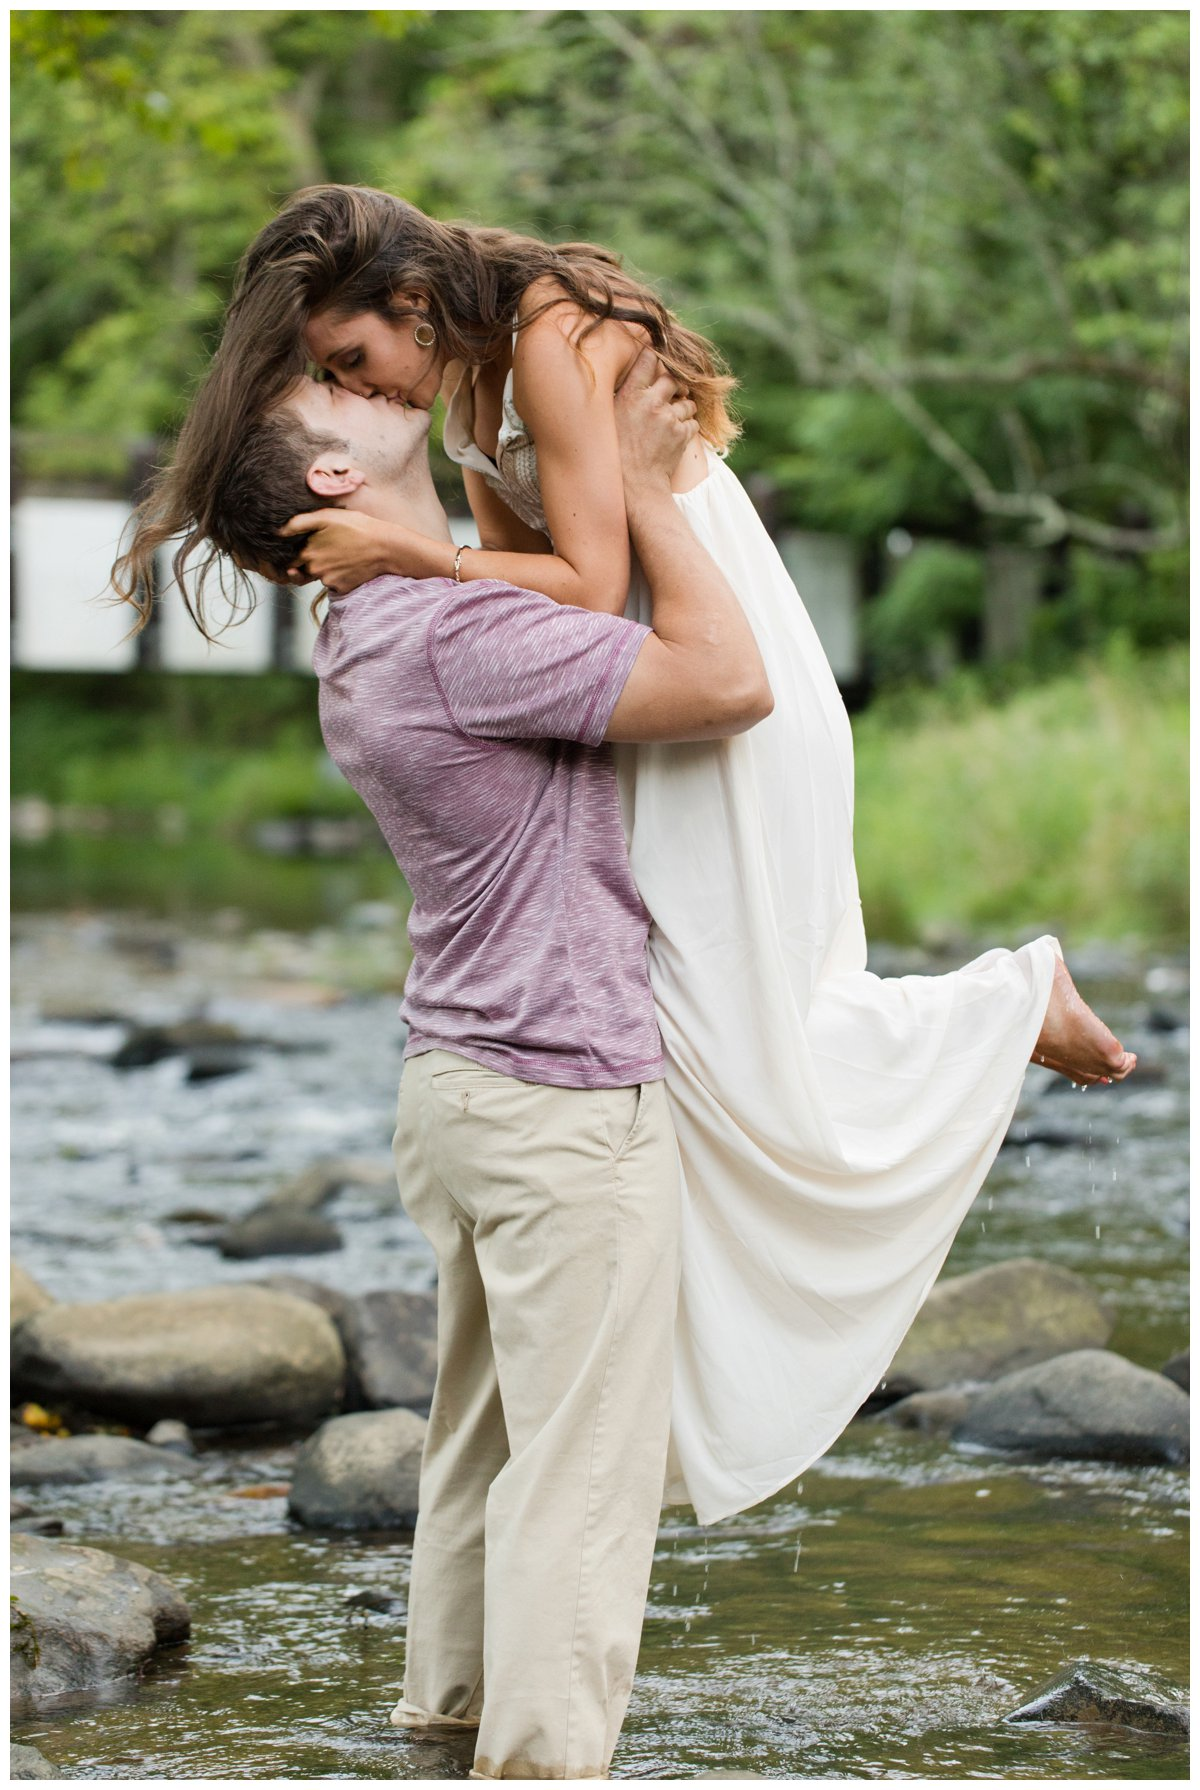 Jerusalem Mills Bohemian Engagement Photography in a stream in a white dress. He is lifting her and Kissing her. Water is dripping from her feet.